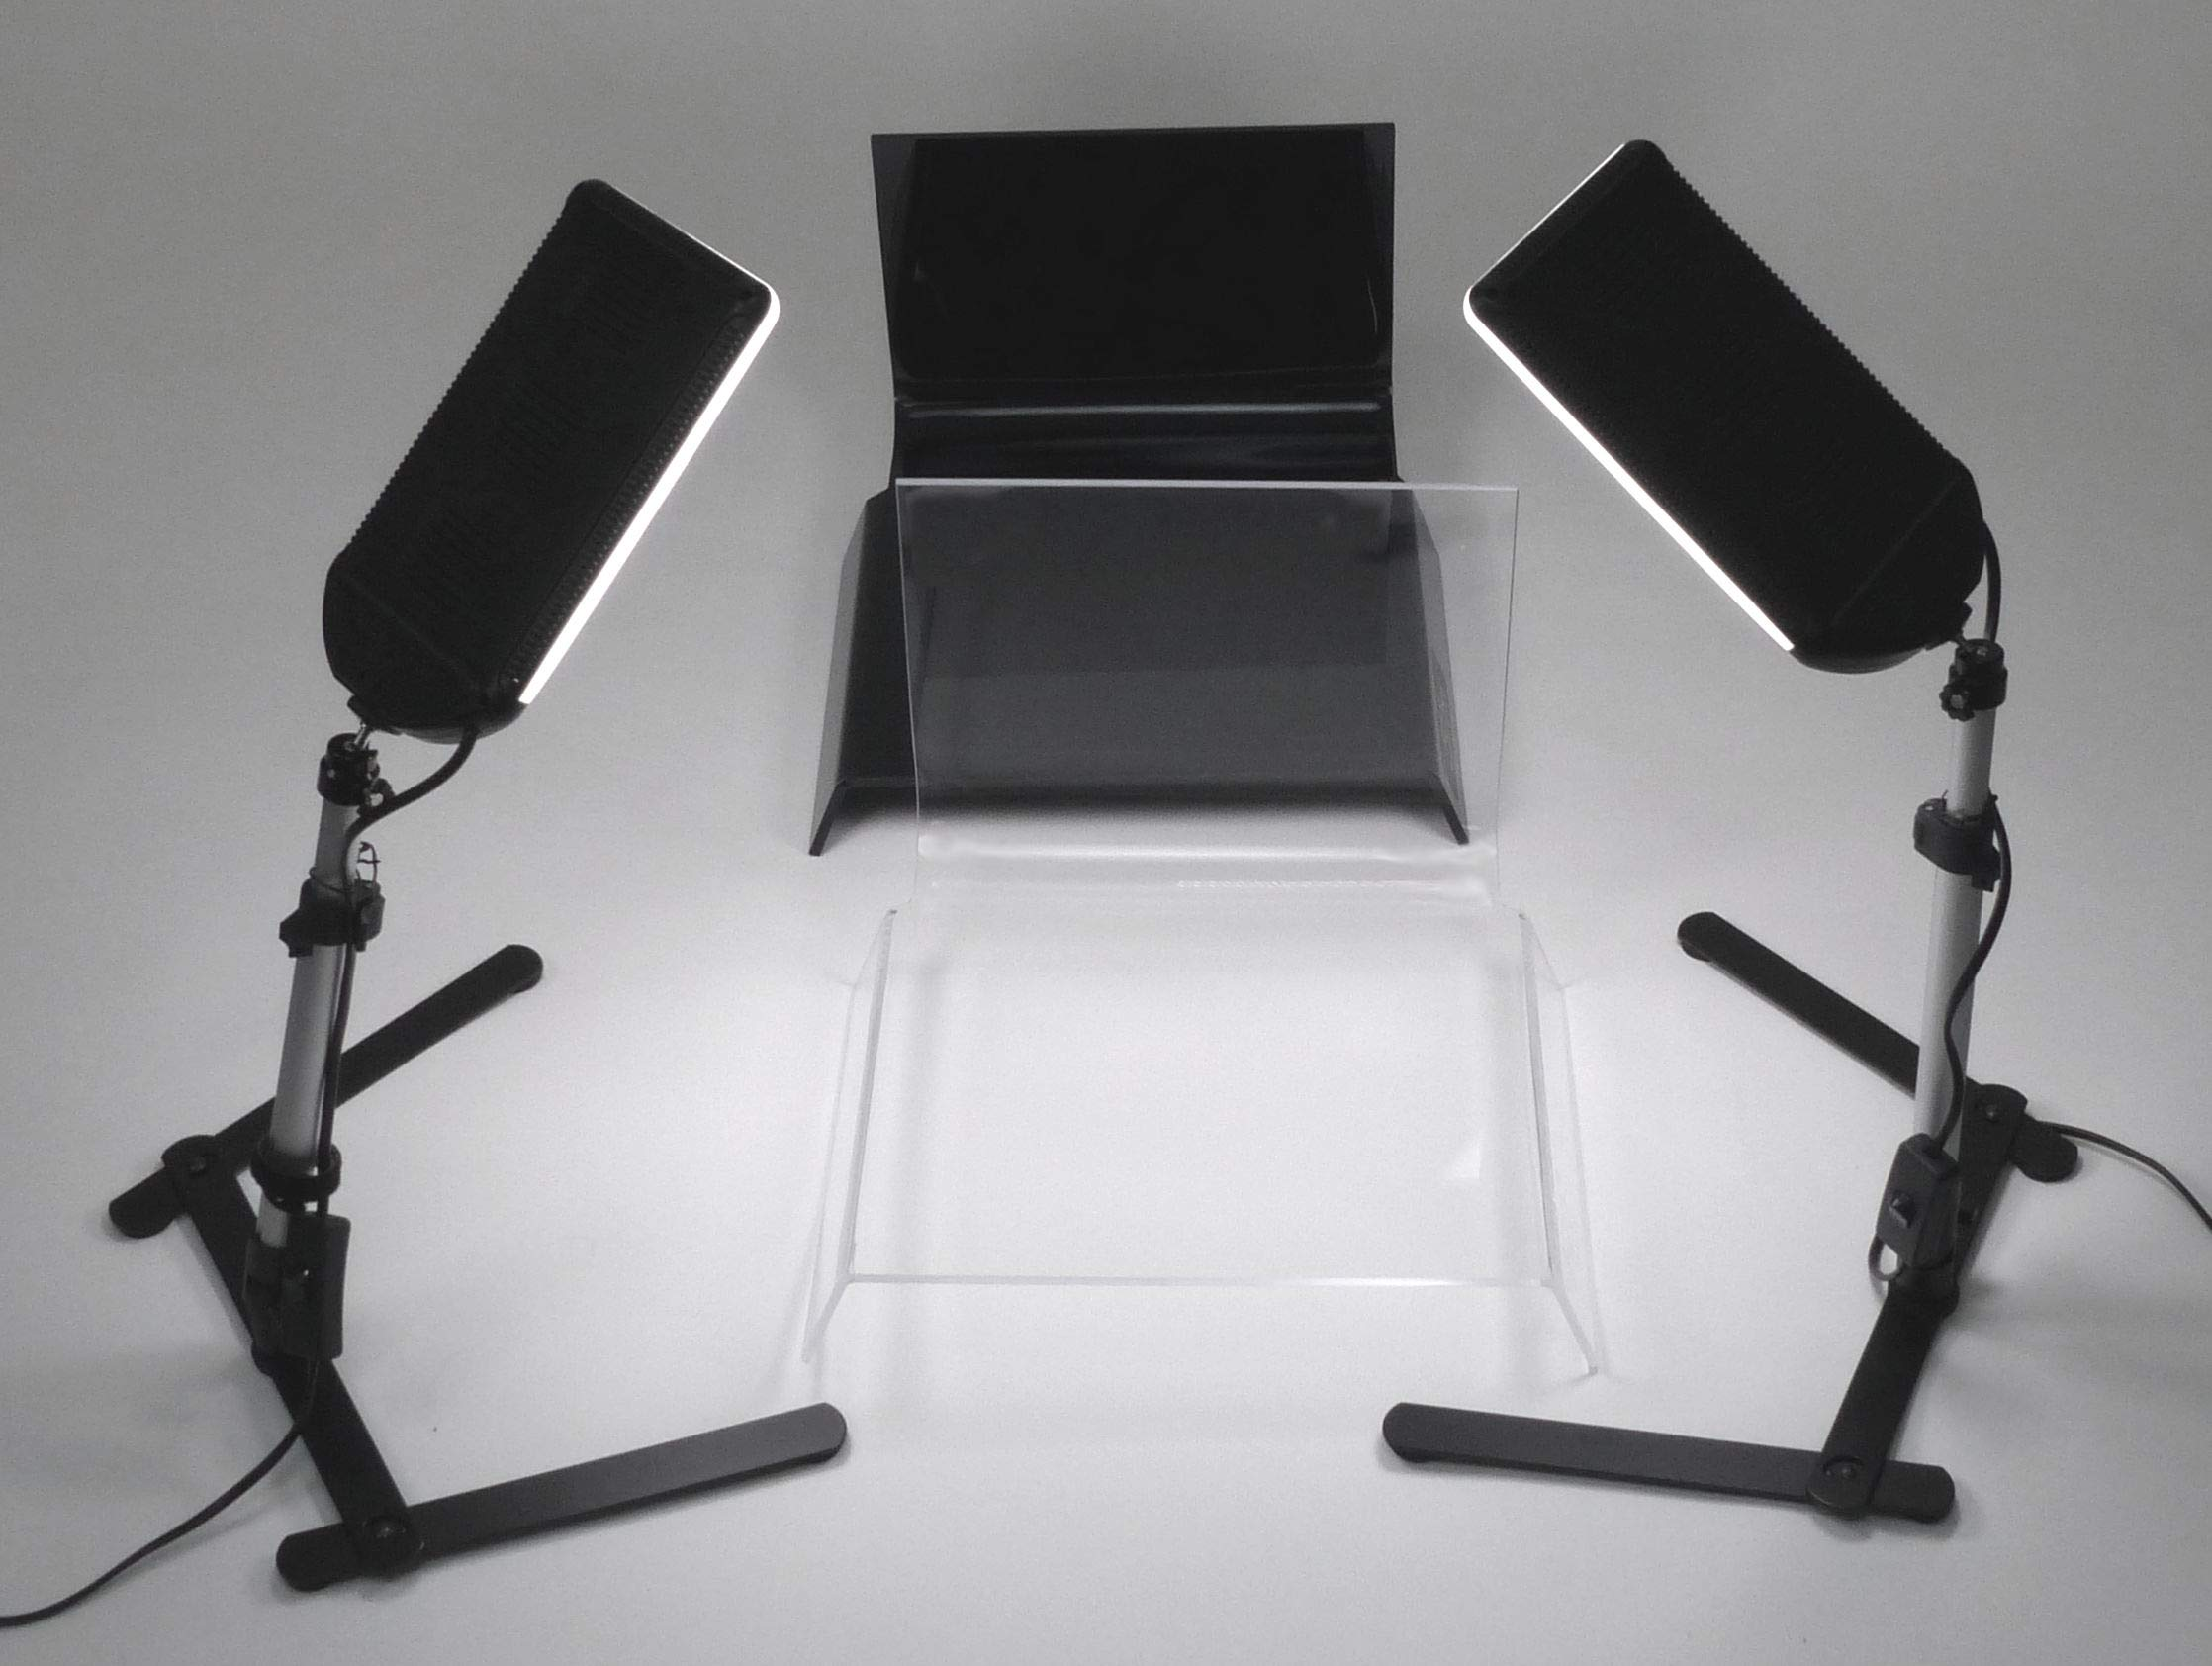 ALZO 100 LED Table Top Platform Light Kit - Black & Clear Shooting Tables for Jewelry Photography by ALZO digital